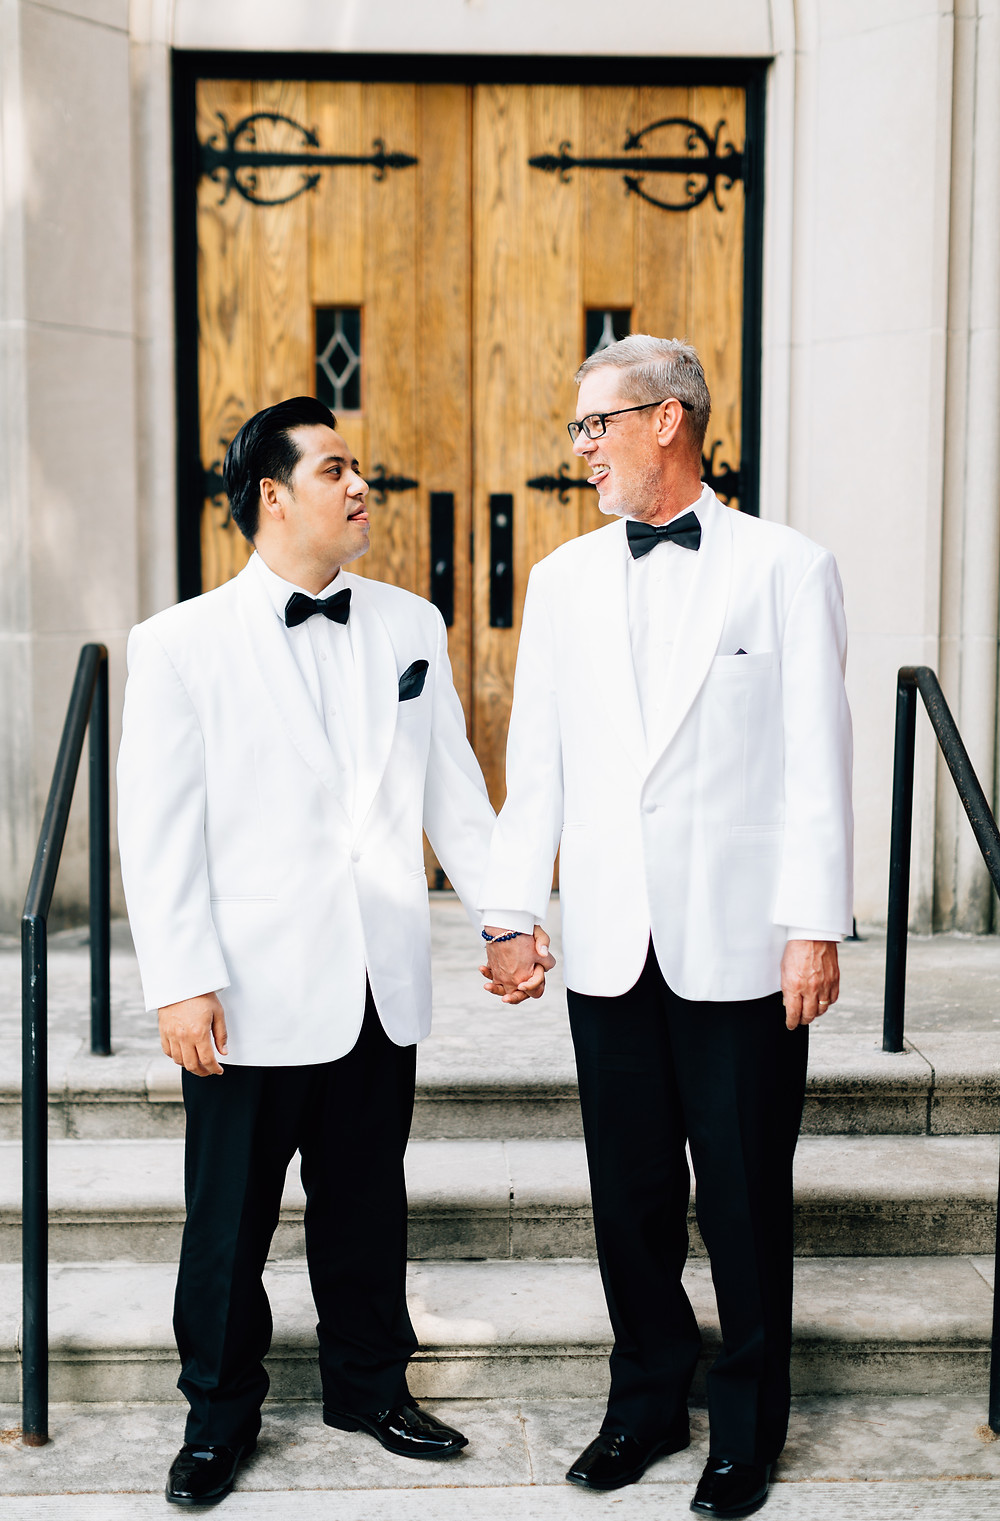 Silly grooms portraits